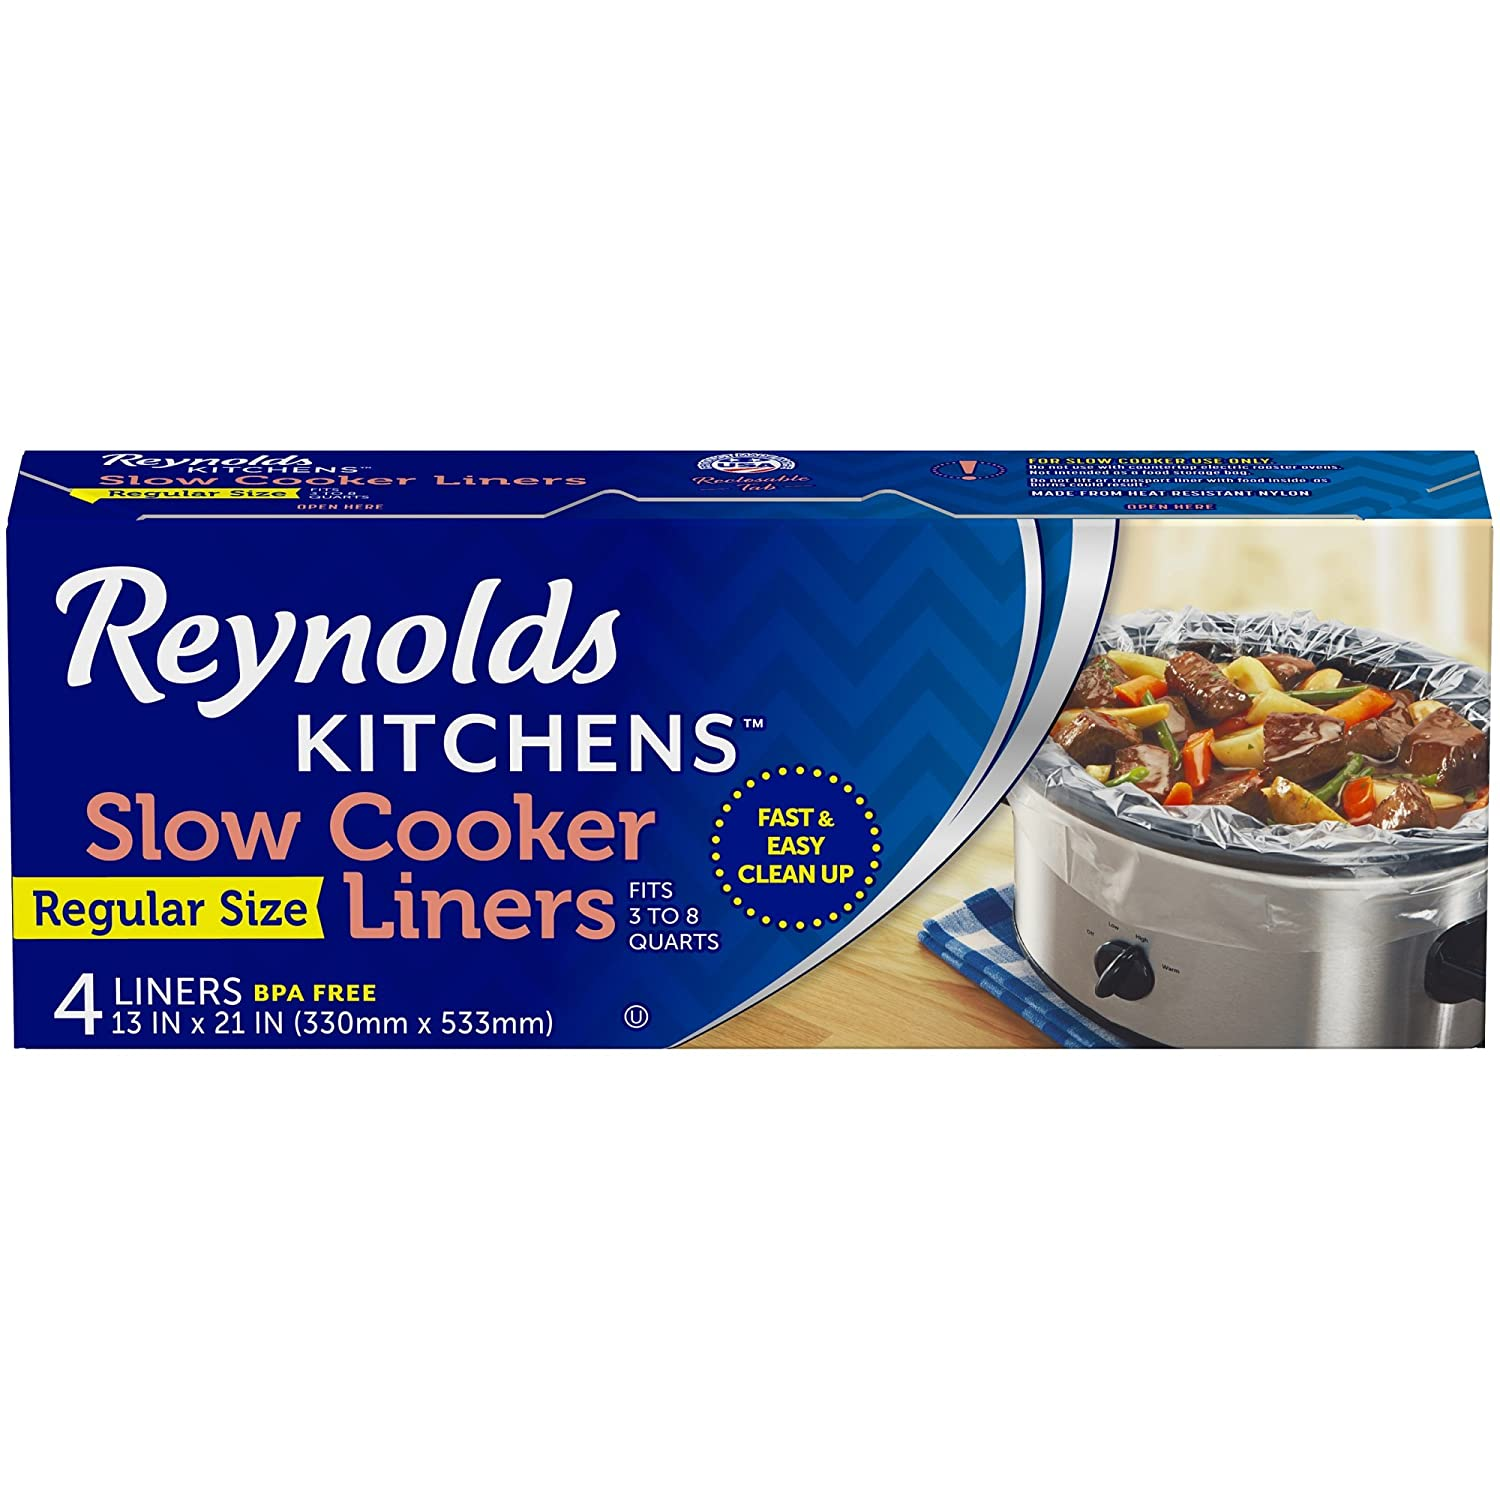 Reynolds Kitchens Premium Slow Cooker Liners - 13 x 21 inches, 4 Count